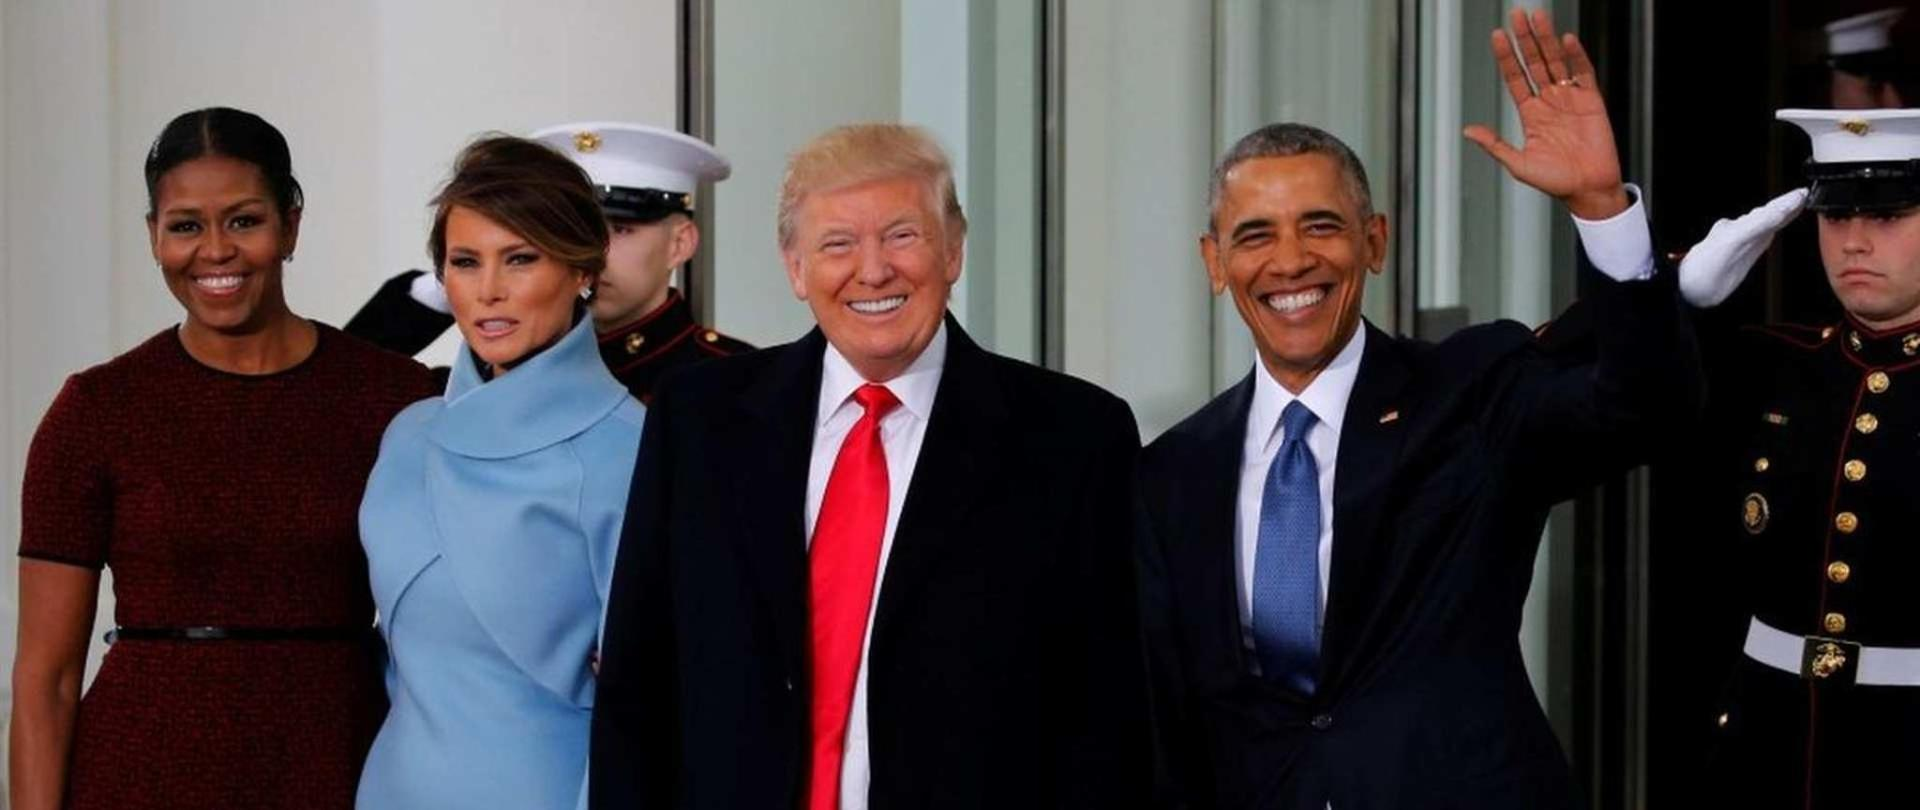 presidents-trump-and-obama.jpg.1920x810_0_14_15999.jpeg.1920x0.jpeg